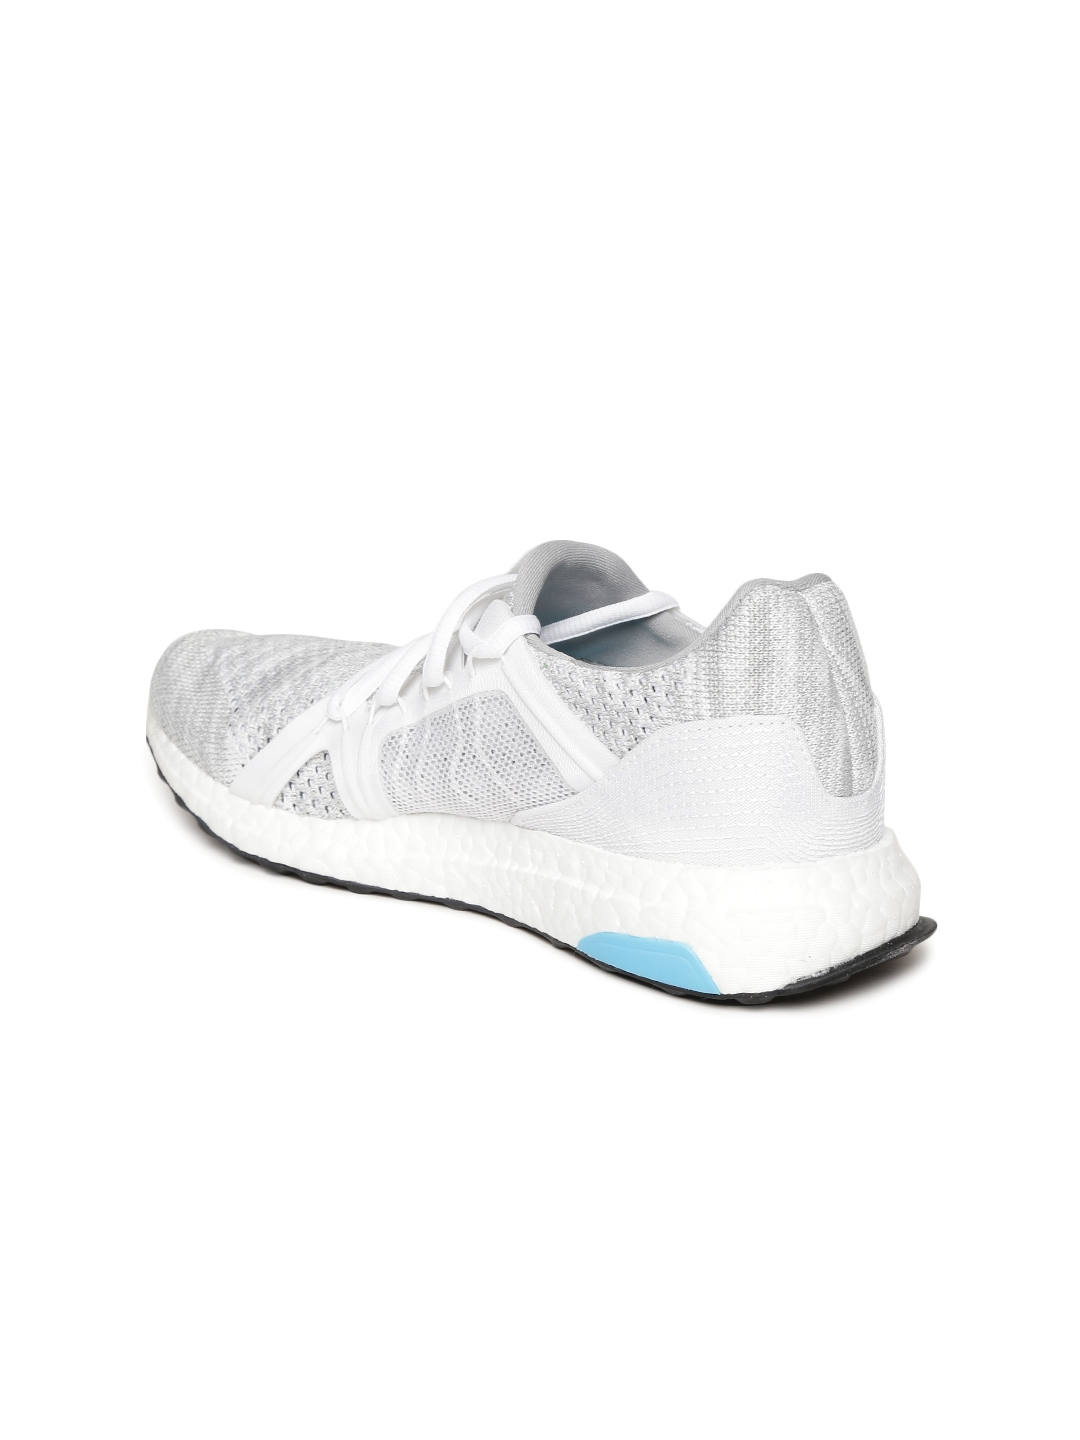 b1dfa1a24 Stella McCartney by ADIDAS Women Grey   White Ultraboost Parley Running  Shoes